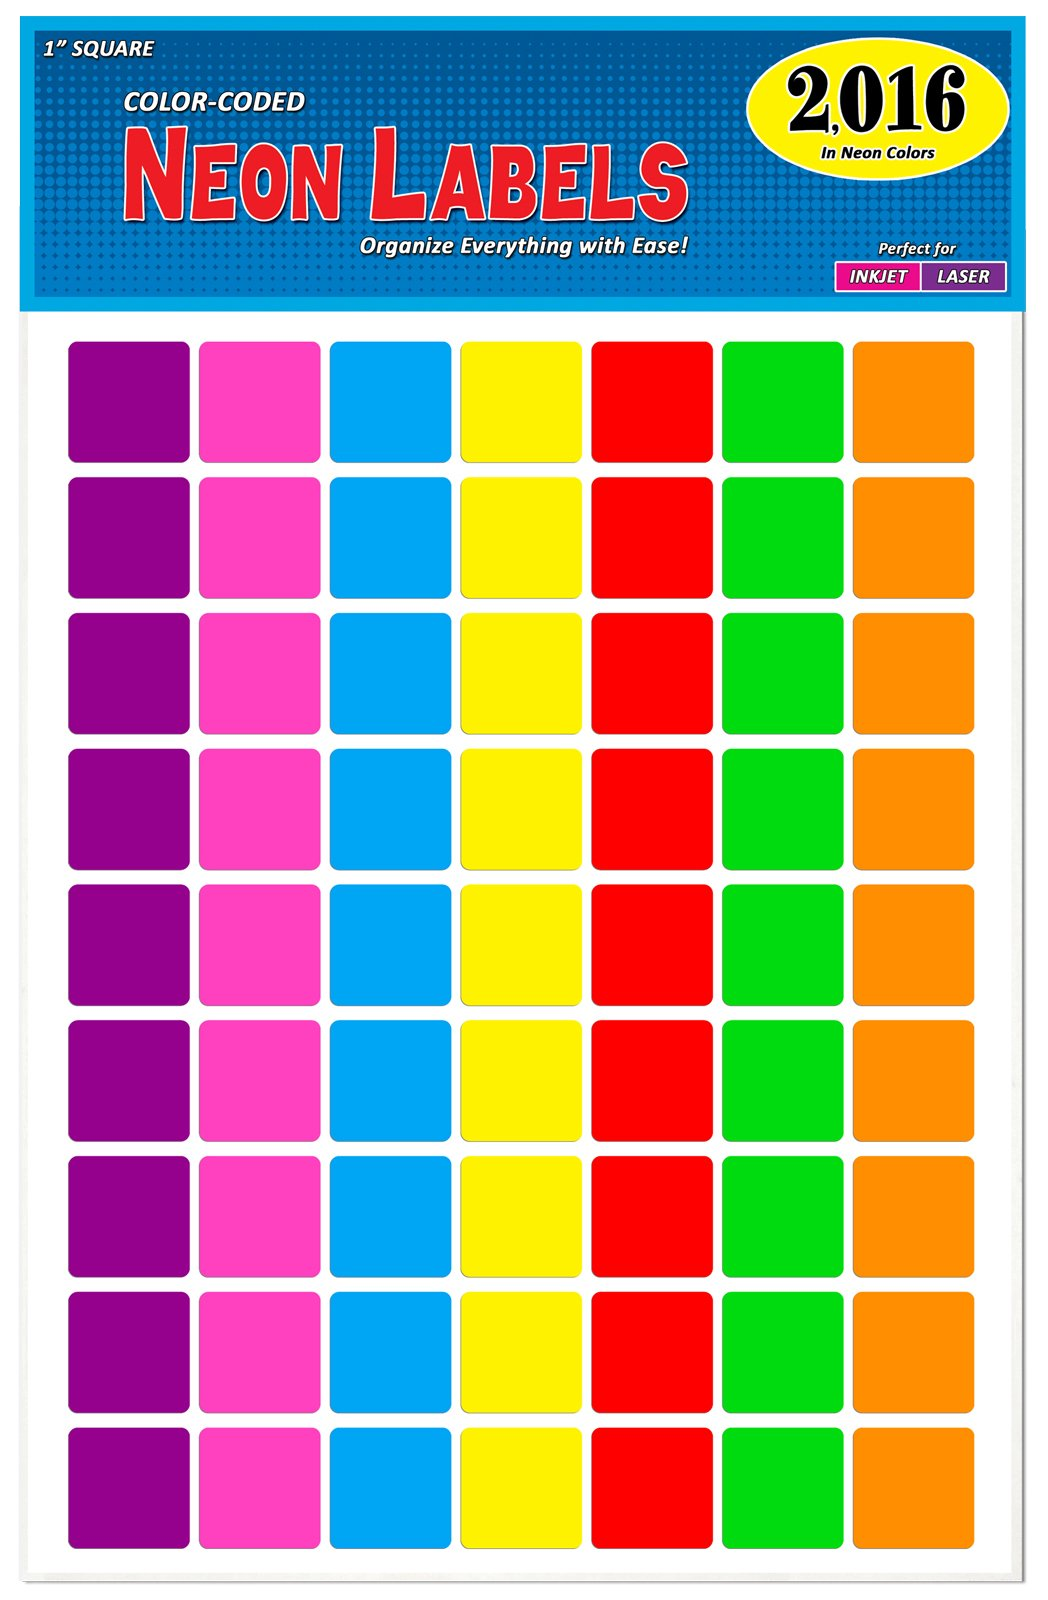 Pack of 2016 1-Inch Square Color Coding Dot Labels, 7 Bright Neon Colors, 8 1/2'' x 11'' Sheet, Fits All Laser/Inkjet Printers, 63 Labels per Sheet, 1''